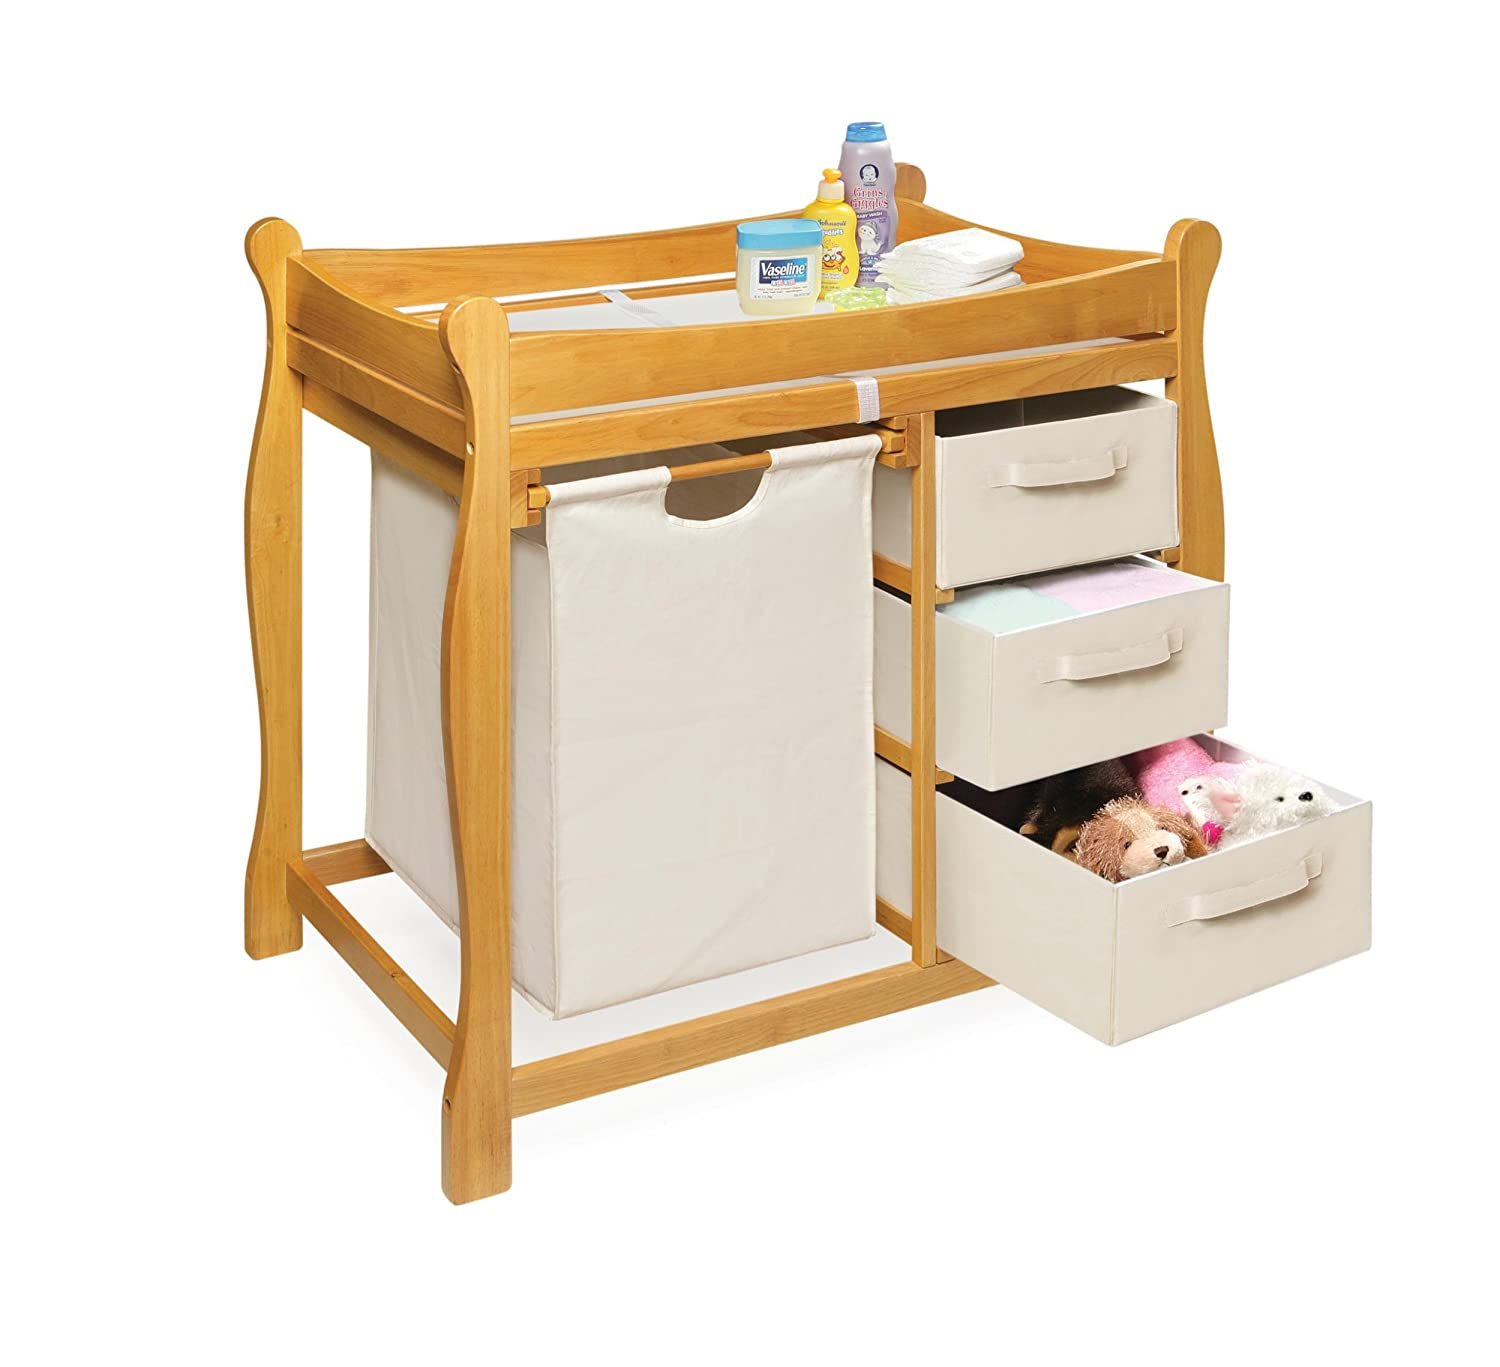 amazoncom badger basket sleigh style changing table with hamper3 baskets honey honey oak changing table baby - Diaper Changing Table